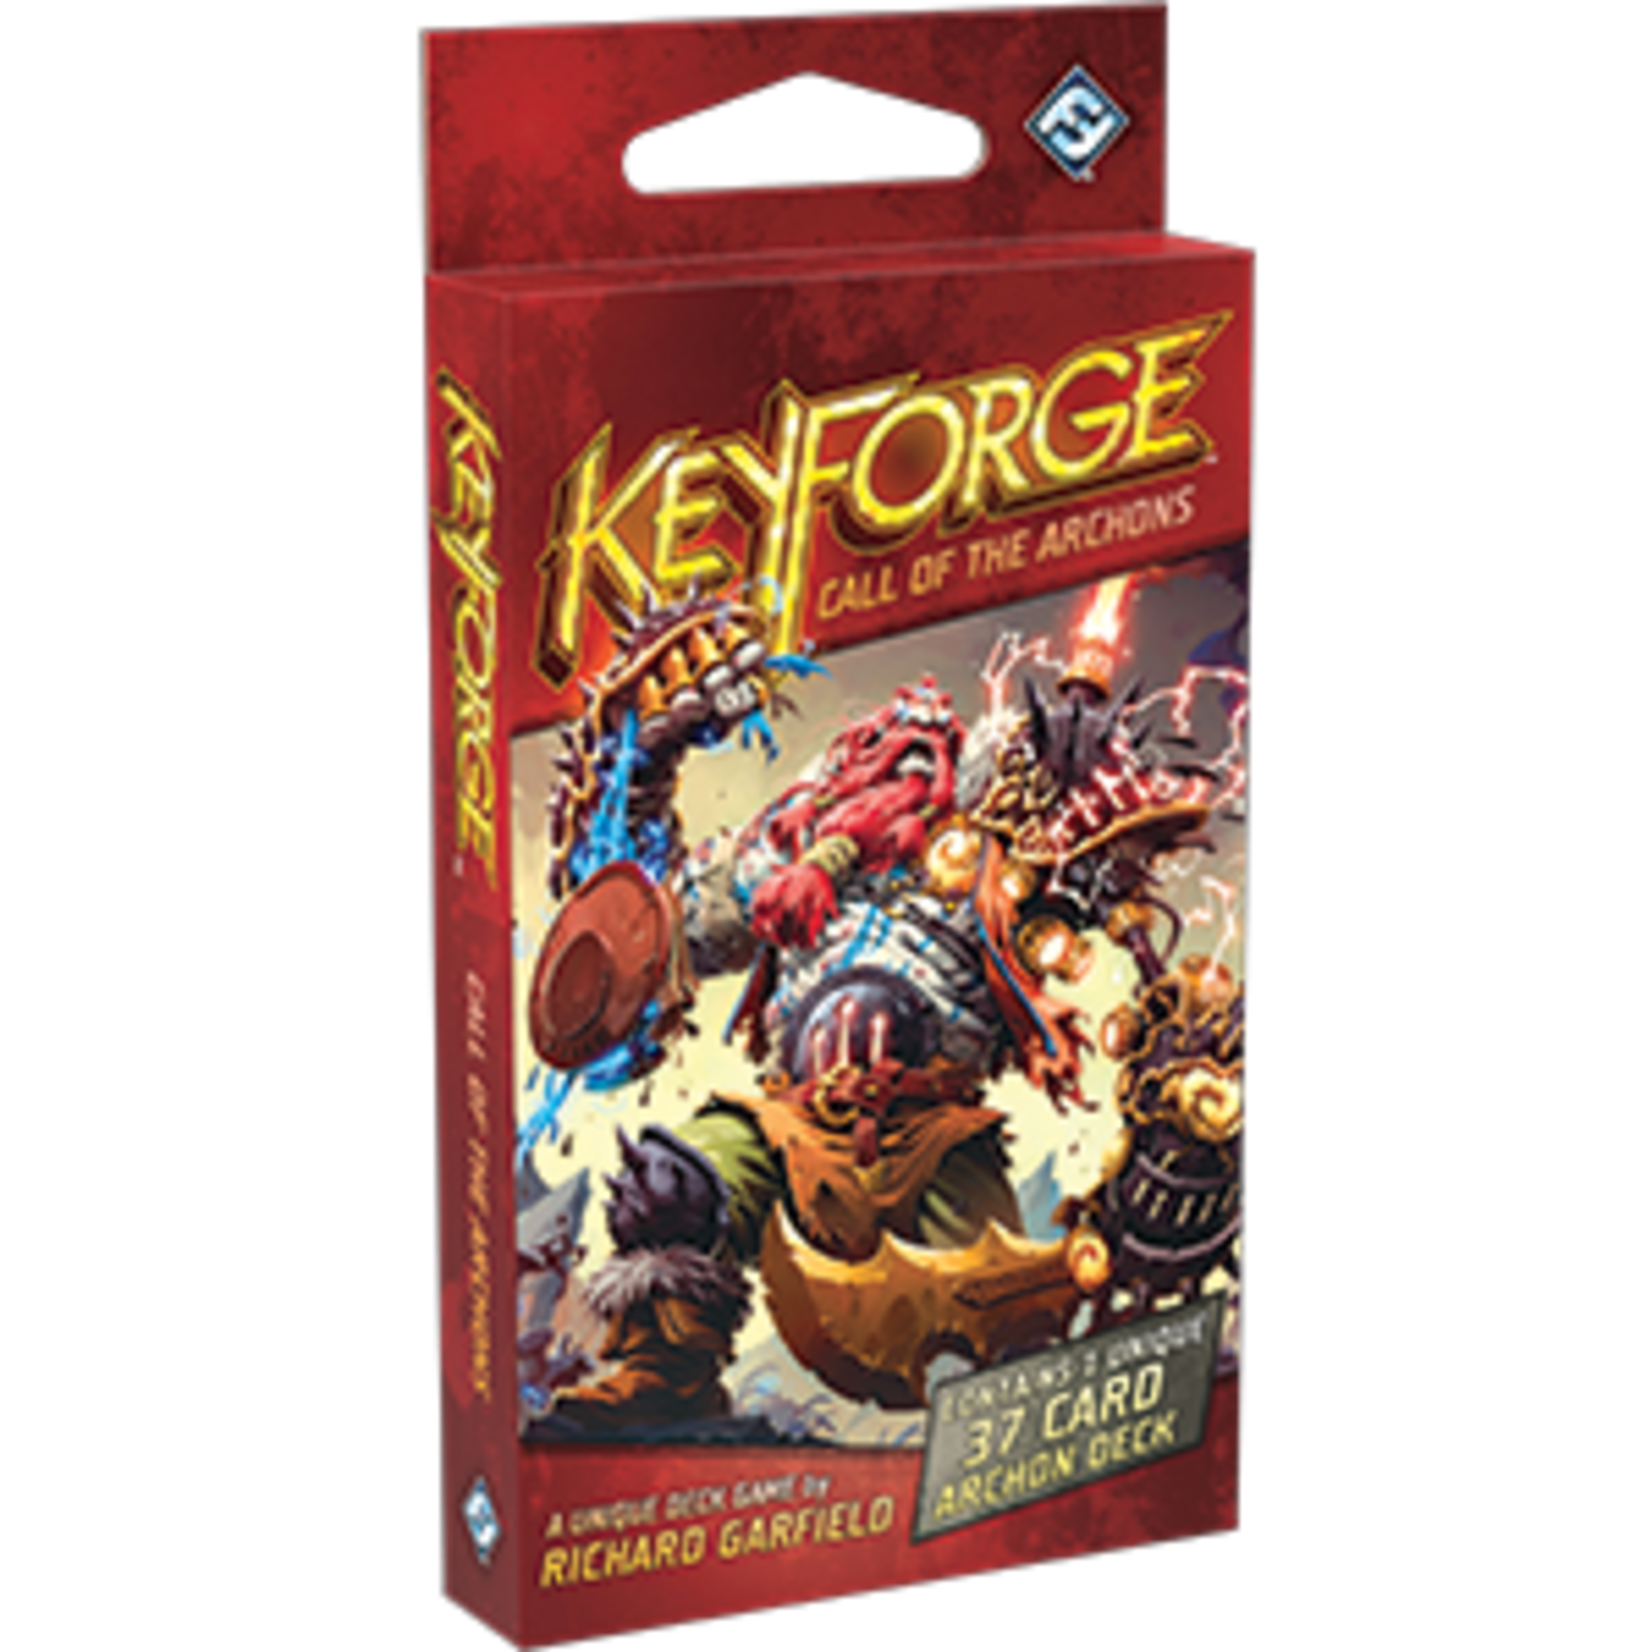 KeyForge: Call of the Archons - Archon Deck Pack